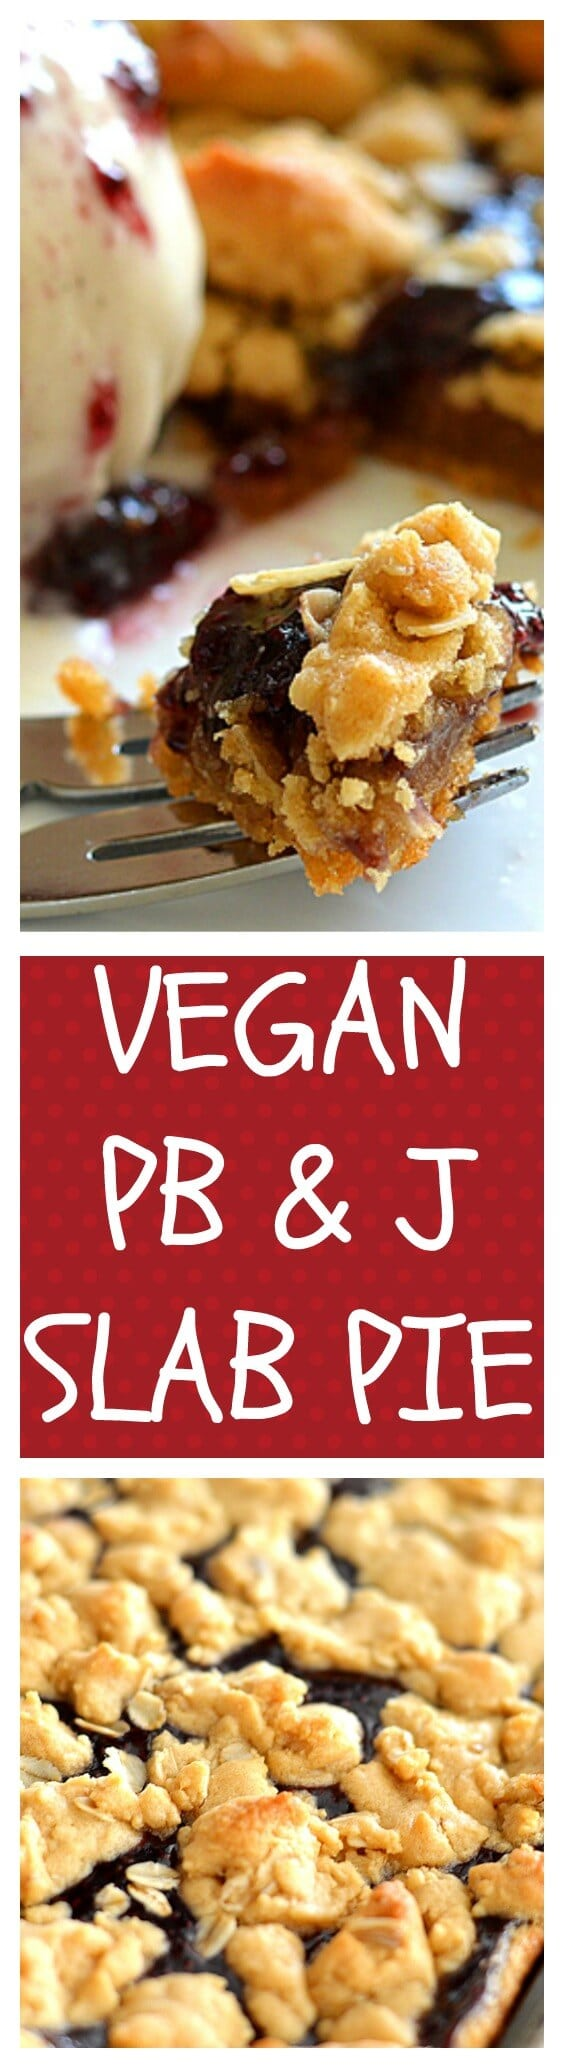 Peanut Butter & Jelly Slab Pie